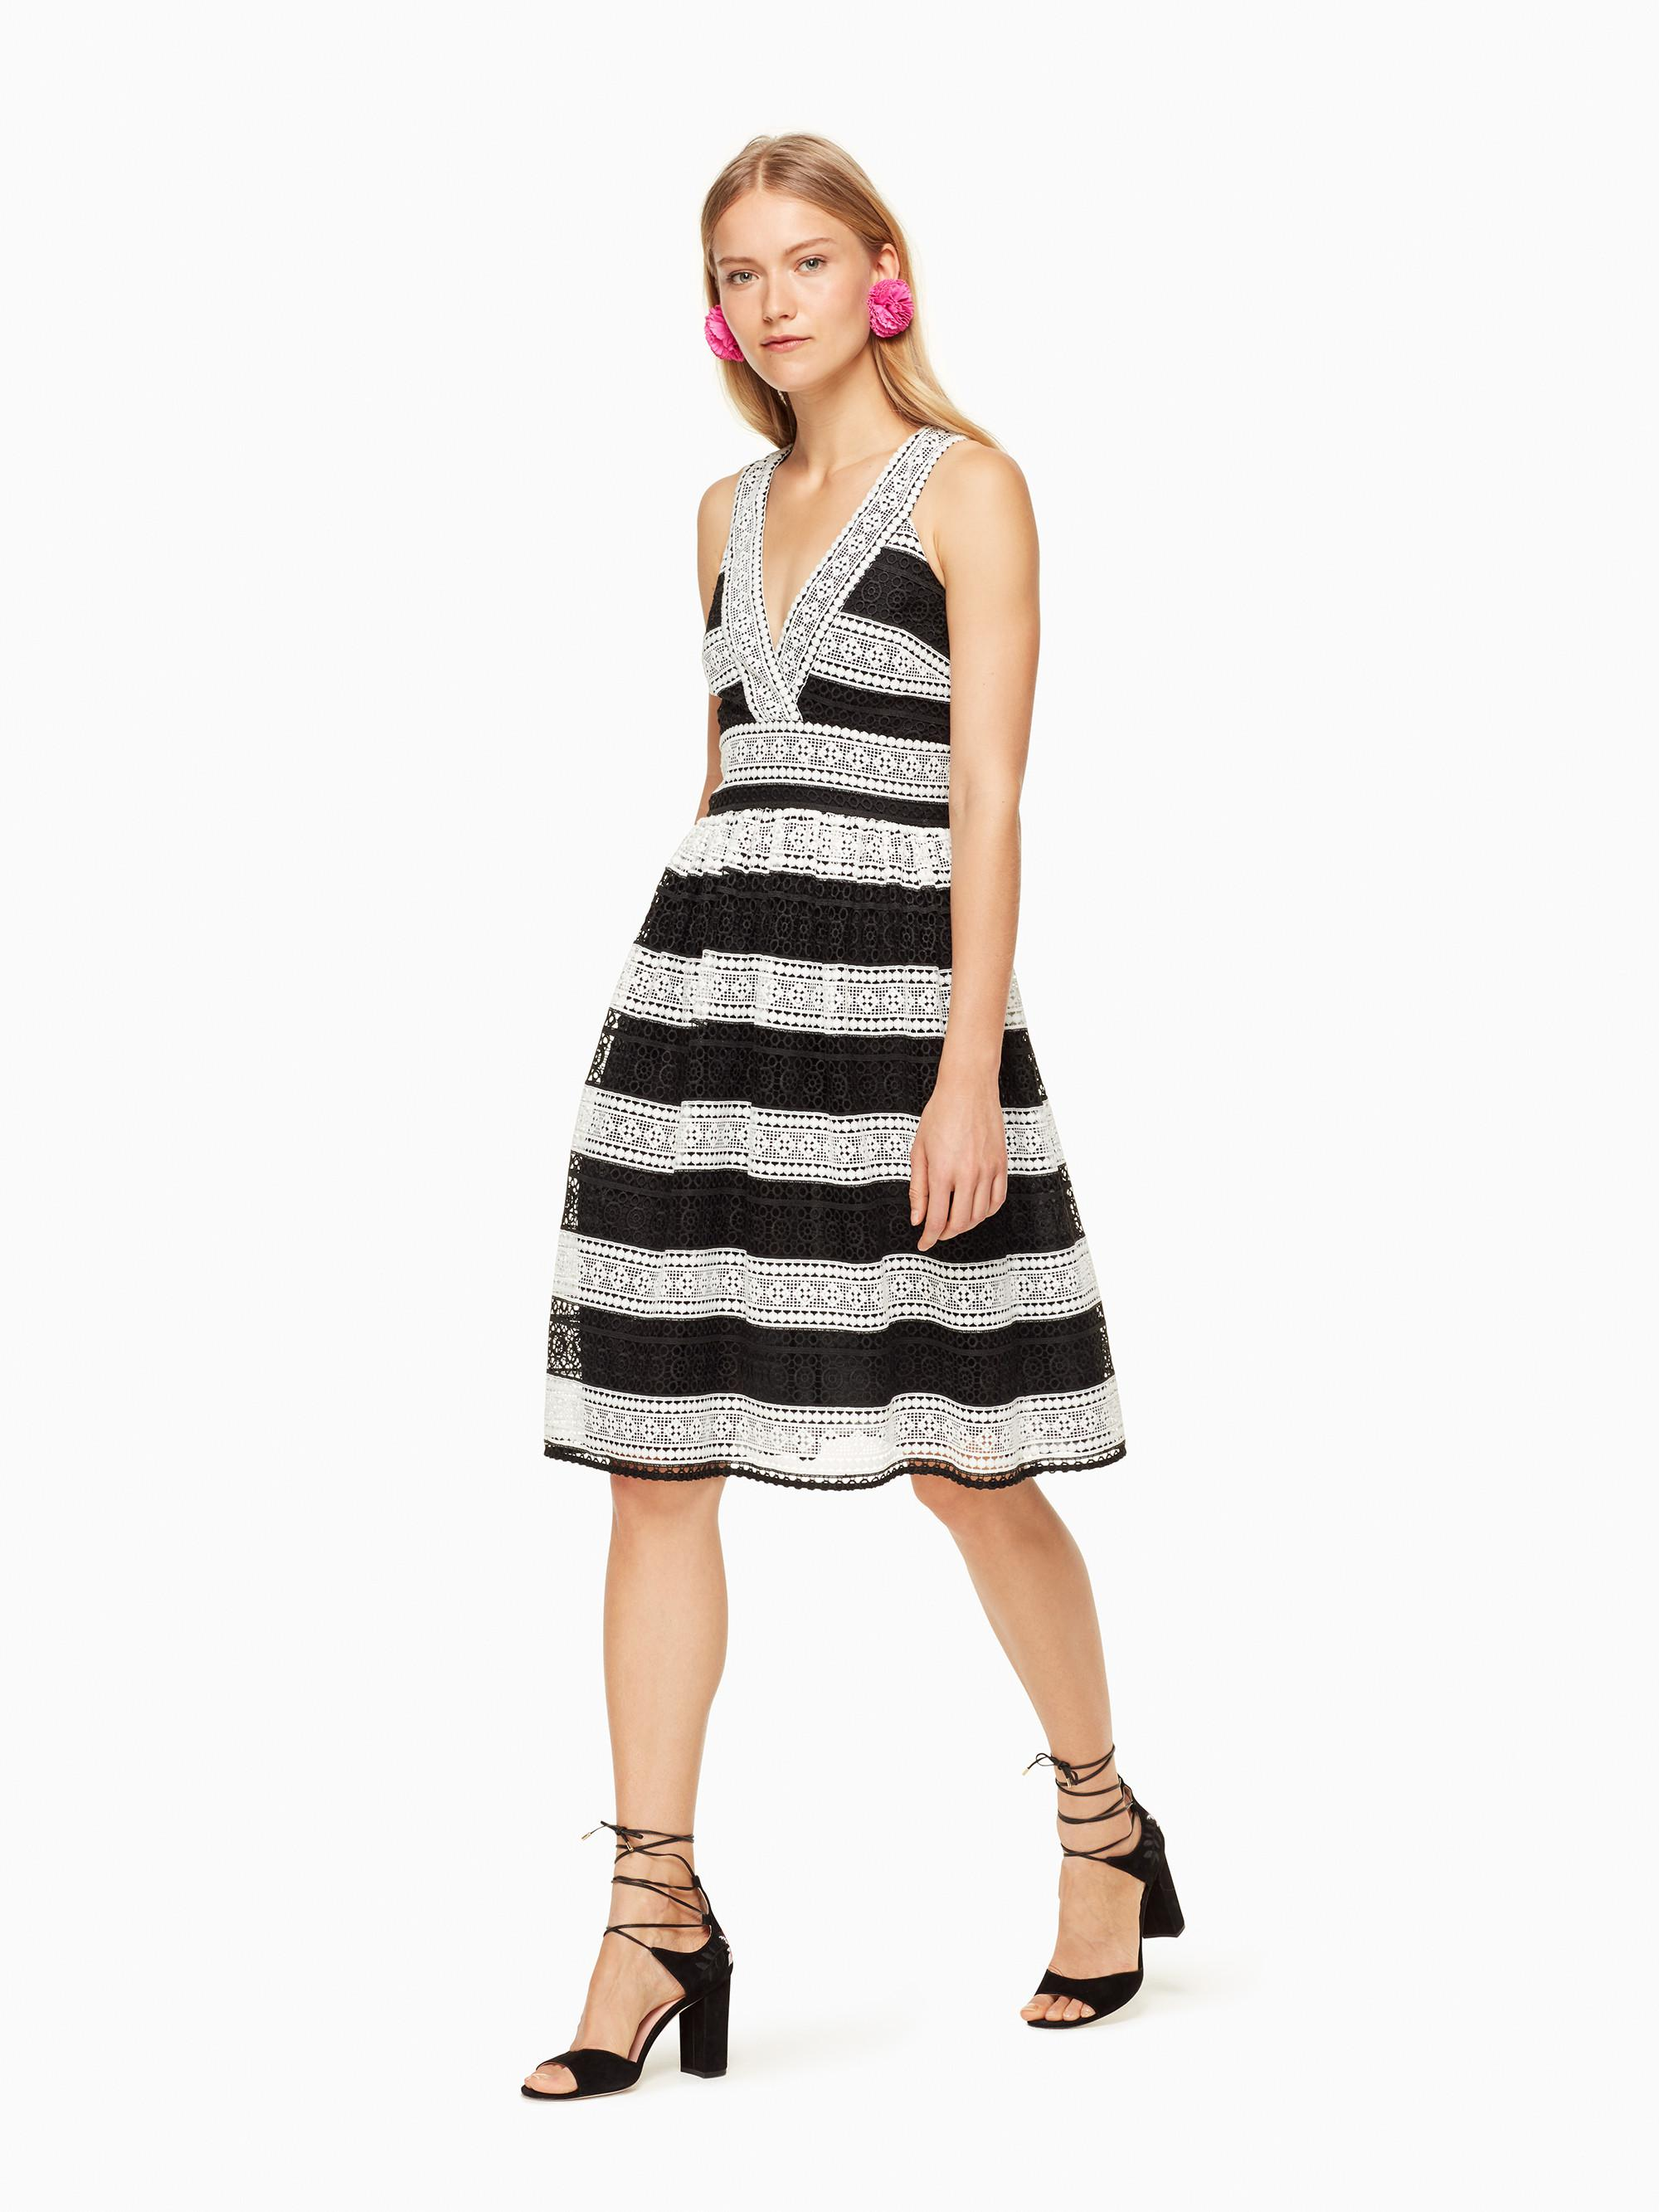 Lyst Kate Spade New York Colorblock Lace Dress In Black